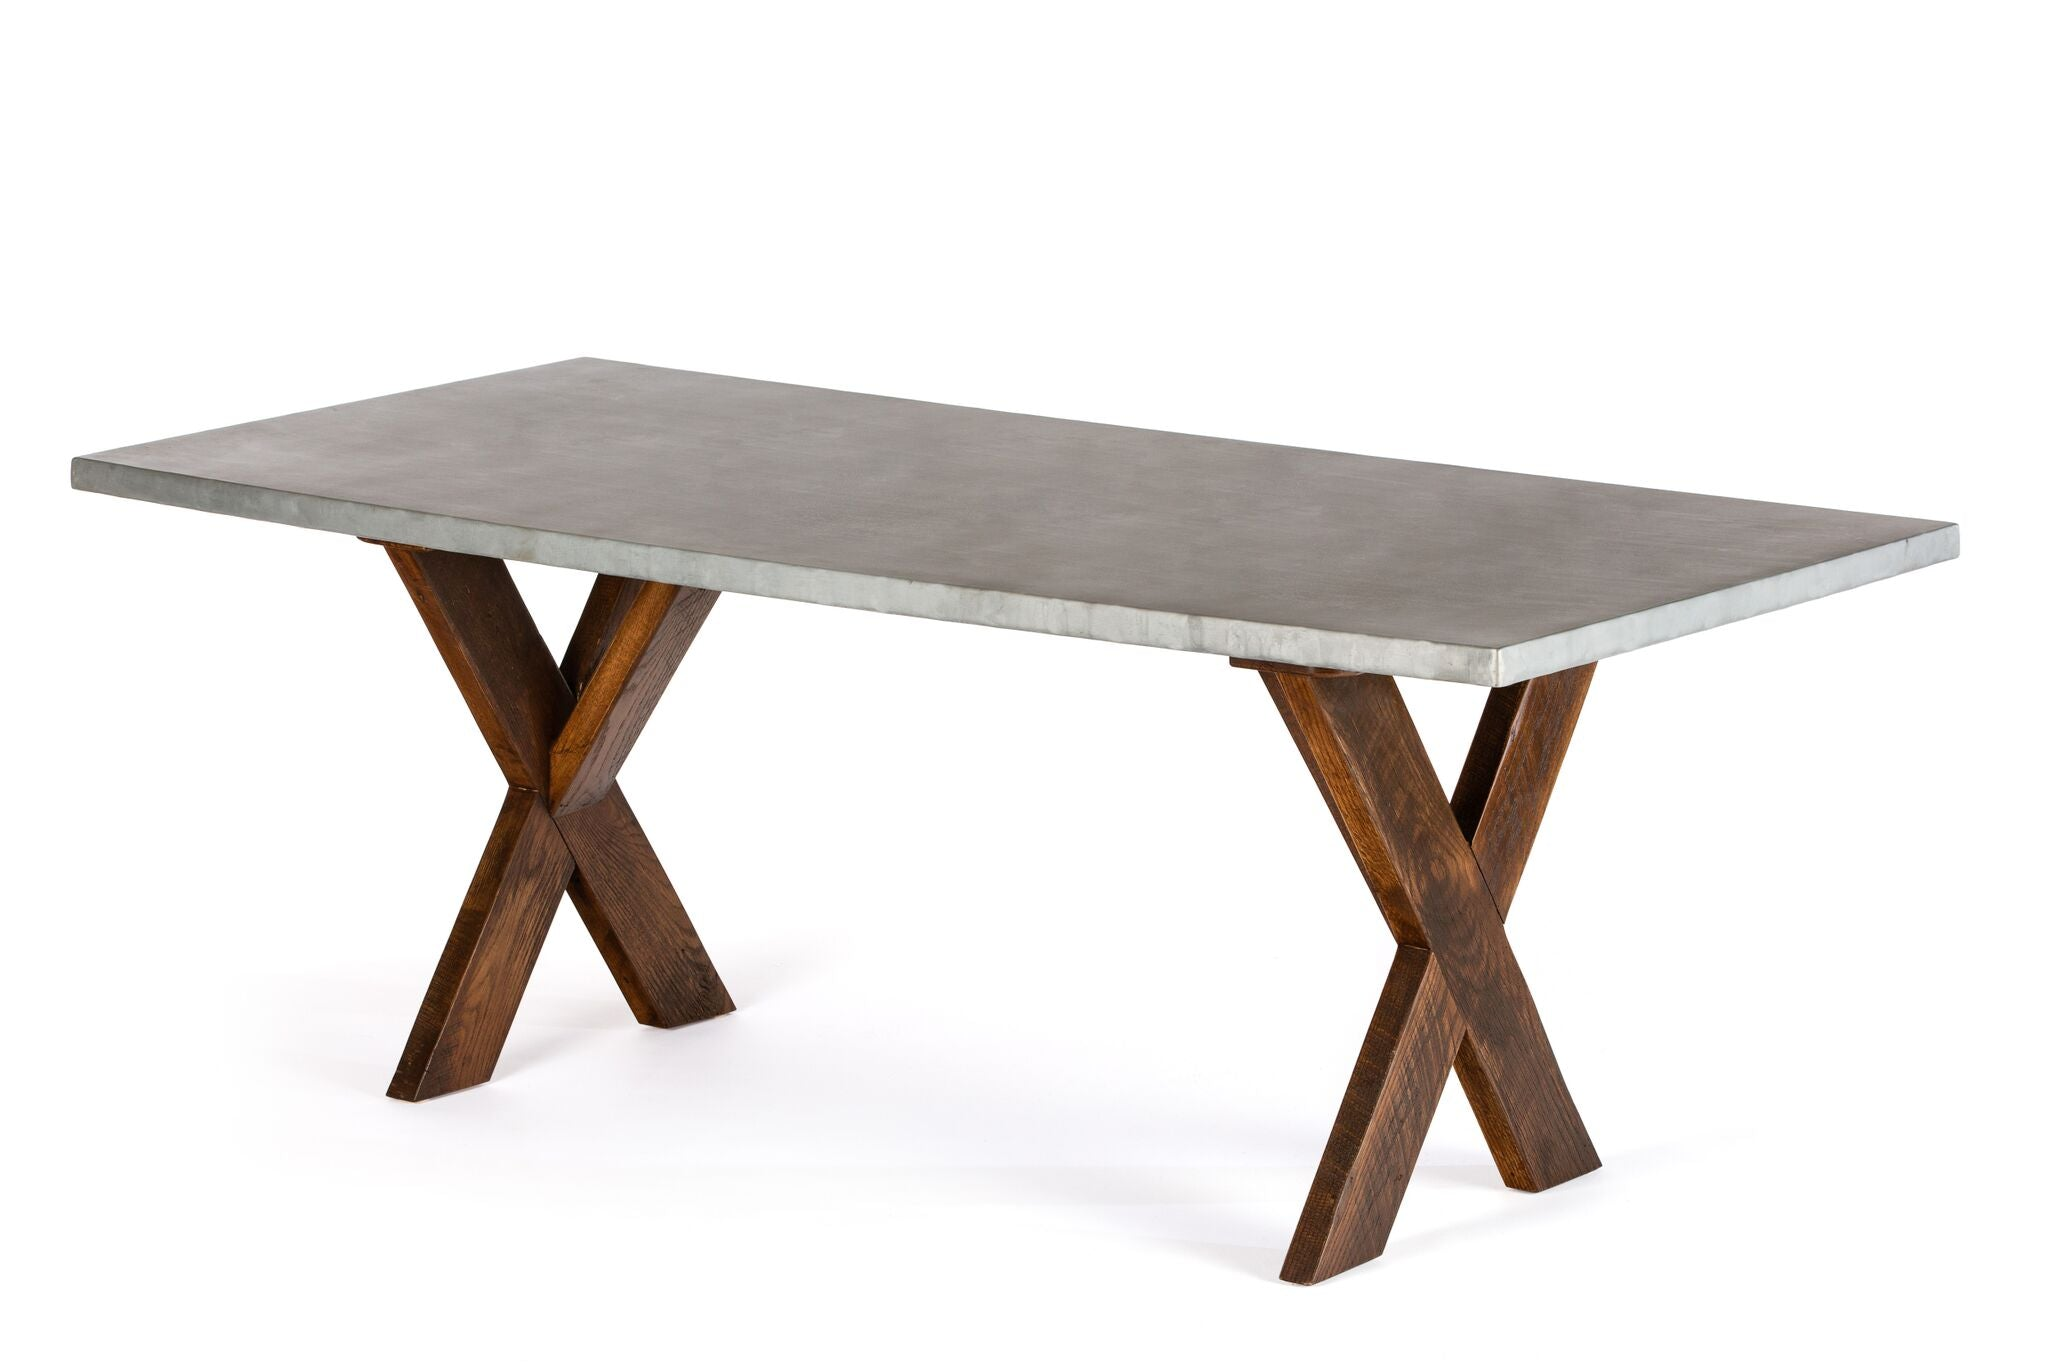 "Zinc Rectangular Table | X Base Trestle Table | CLASSIC | Americana on Reclaimed Oak | 120""L 40""W 30""H 